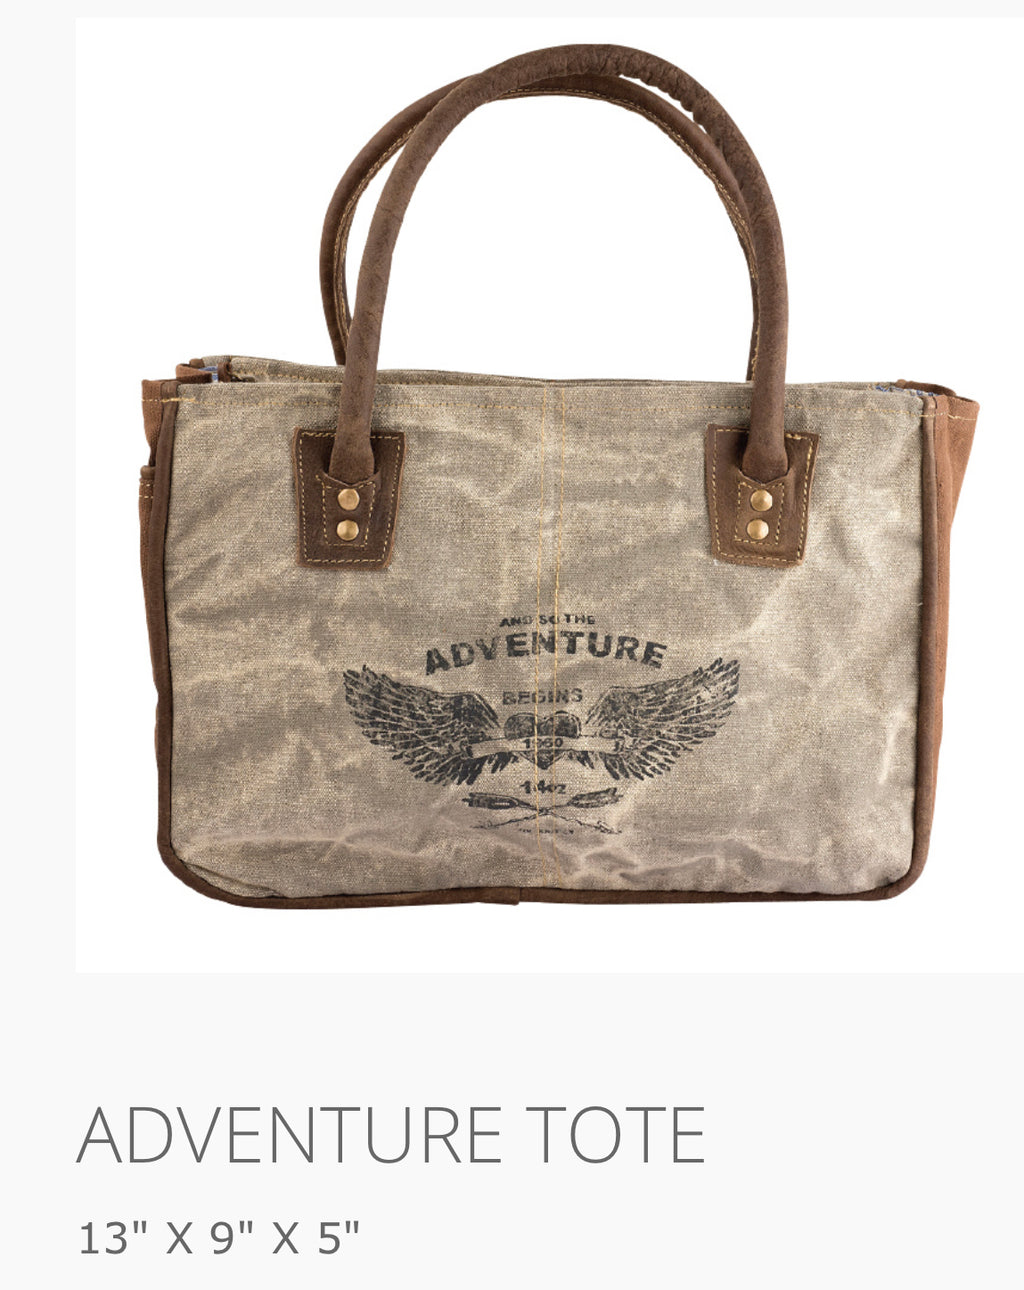 Adventure Tote Bag made from military tent and truck canvas - The Wall Kids, Inc.